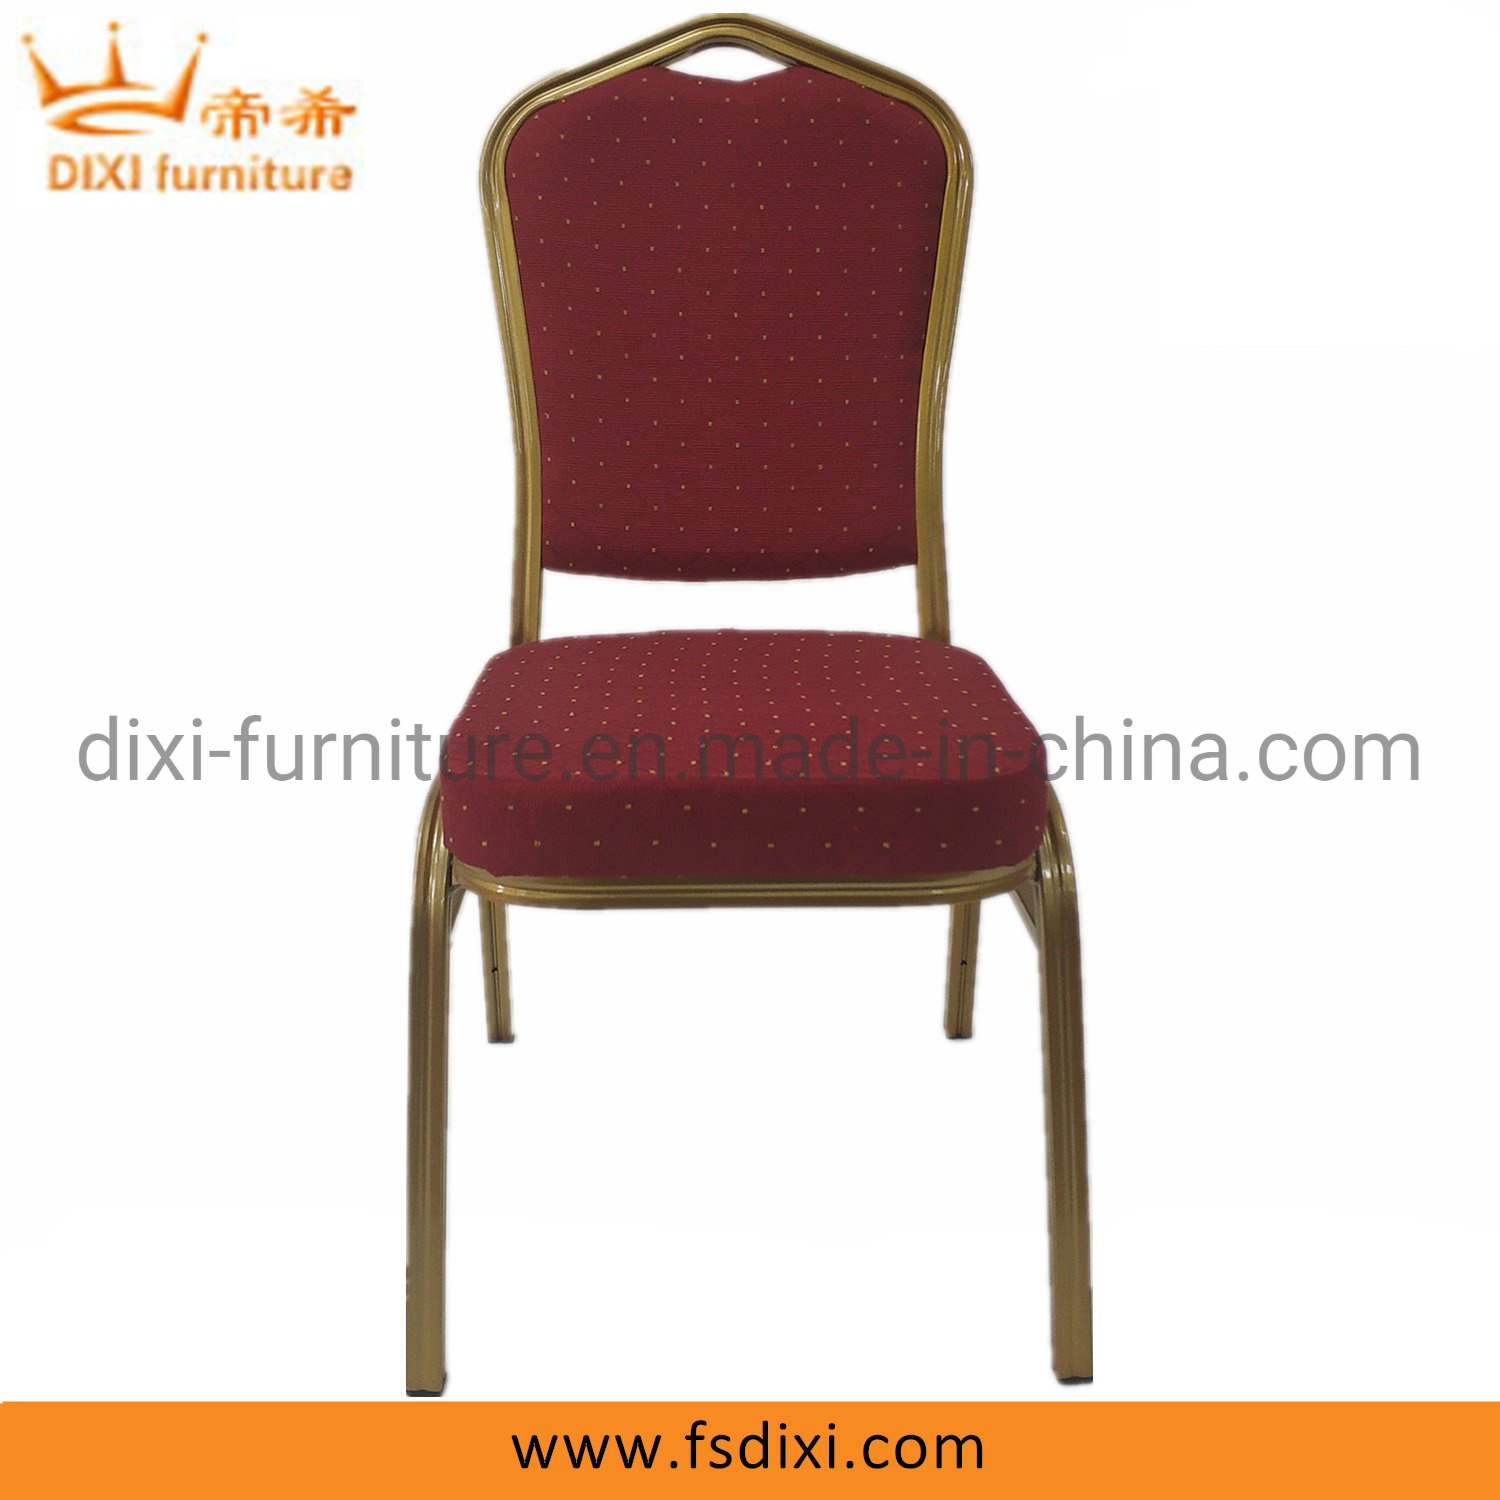 Hot Item Top Quality Commercial Stackable Banquet Chair Gold Fram With Red Fabric